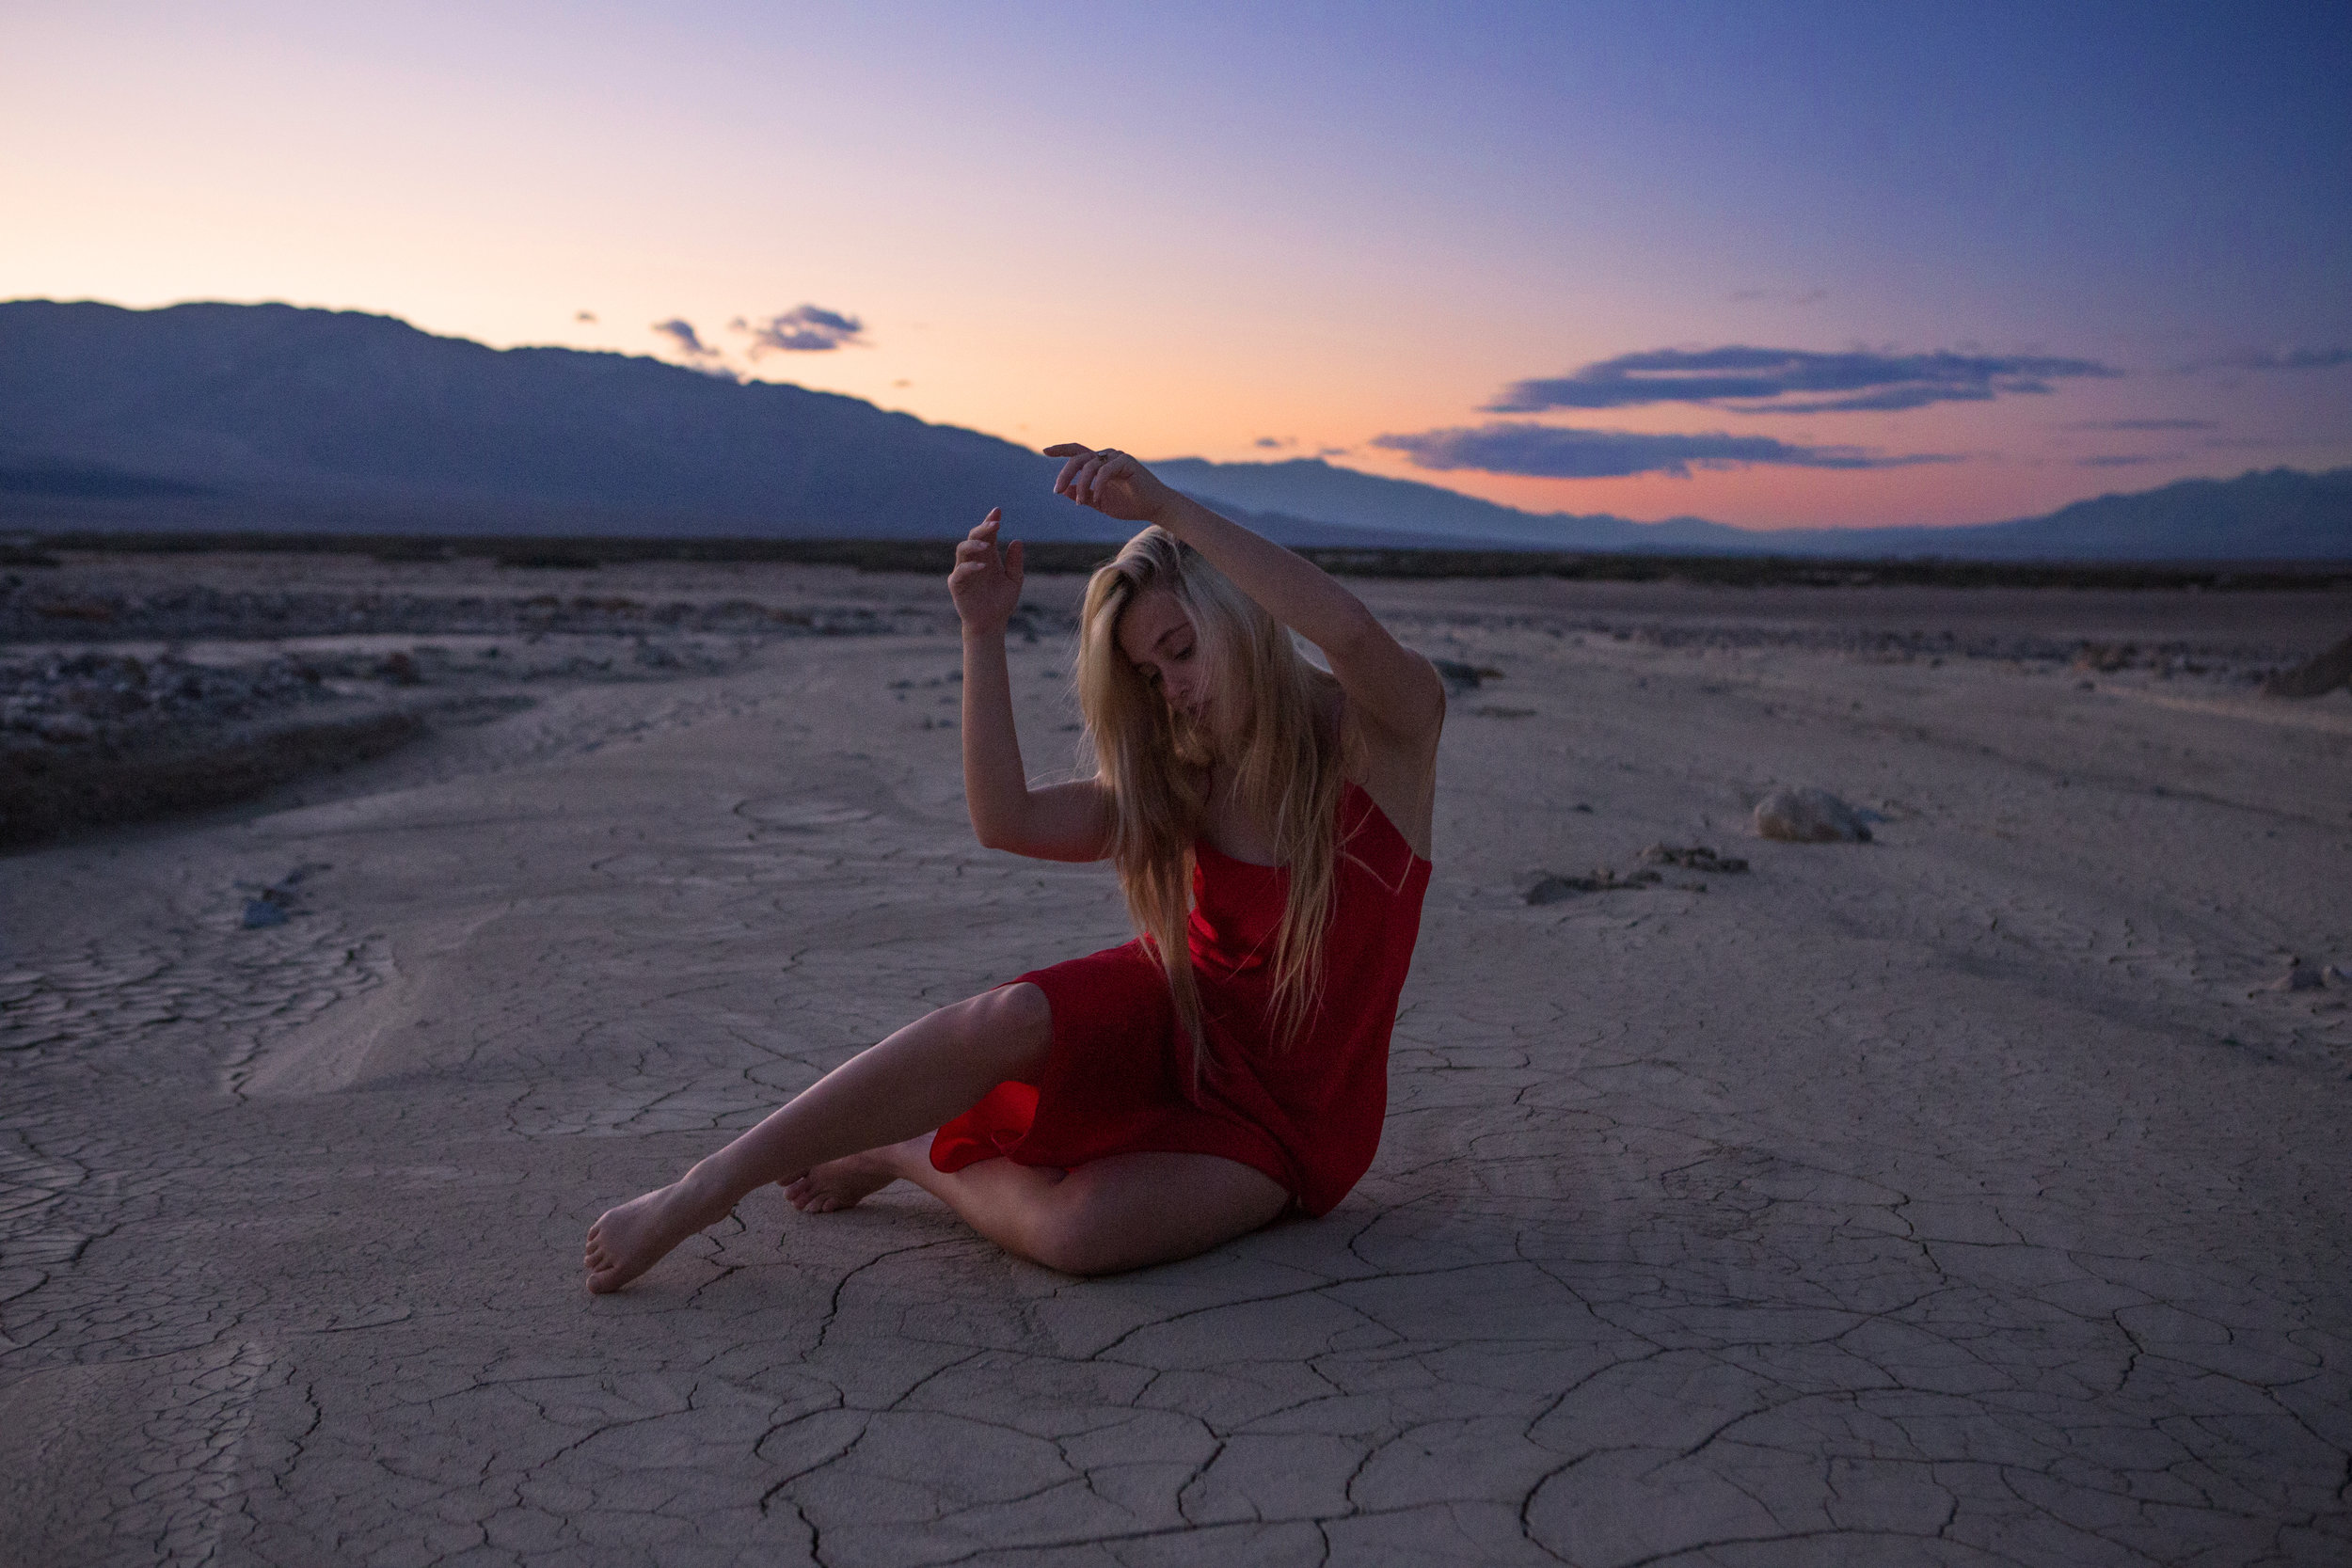 AstroBandit_JordanRose_DeathValley_MudCracks__RedSilk_Sunset_Dancing_1.jpg